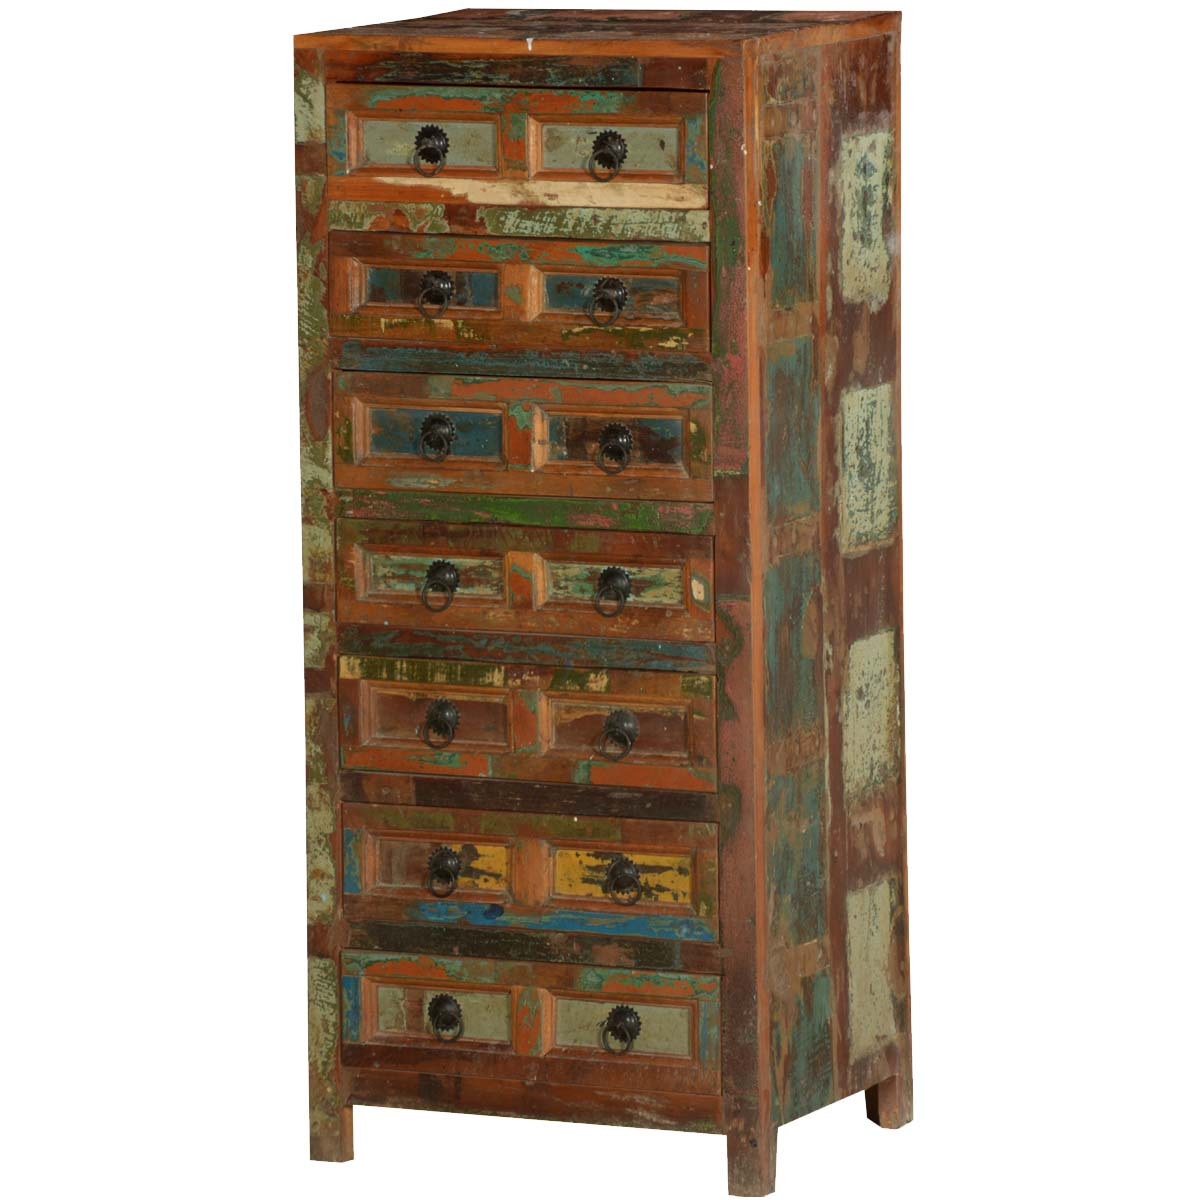 drawer tall full mirrored images design furniture inspirations chinoiserie wide chest english red dresser for drawers of archaicawful lacquer size